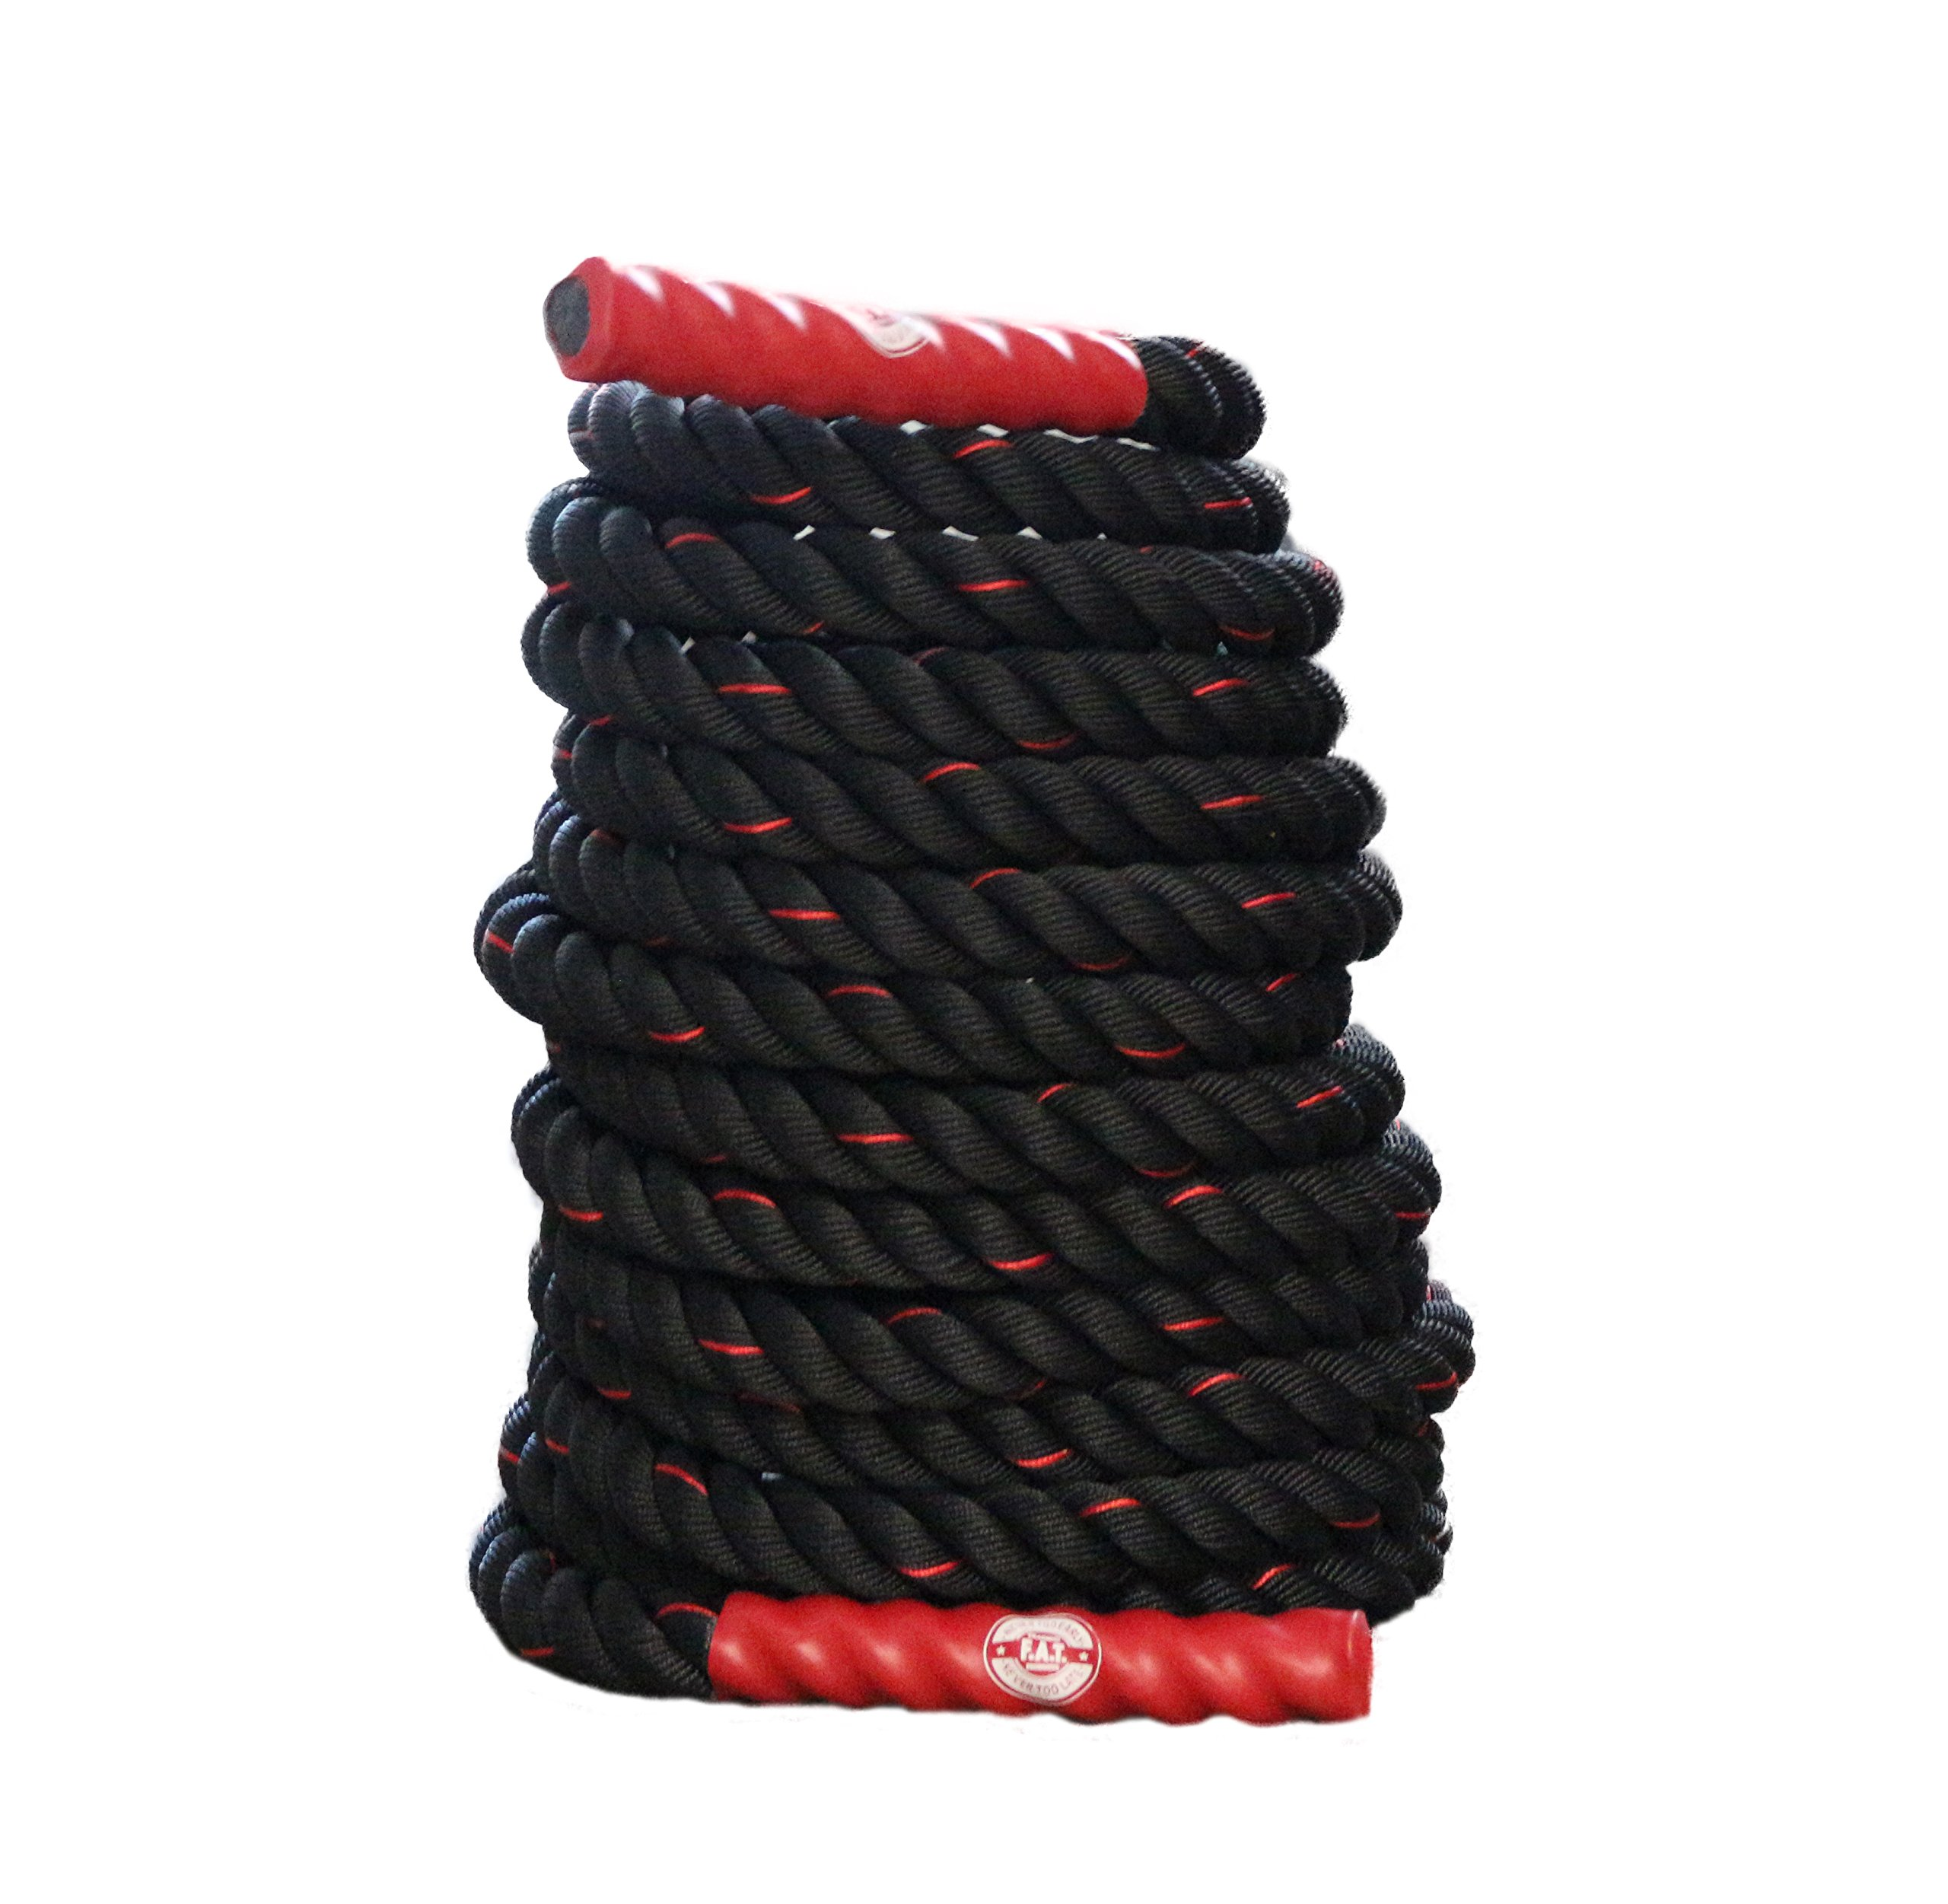 Battle Ropes Exercise Rope | Heavy Battle Rope for Crossfit Equipment | 40' x 1.5'' Gym Rope by Fitness Answered Training by Fitness Answered Training (Image #2)